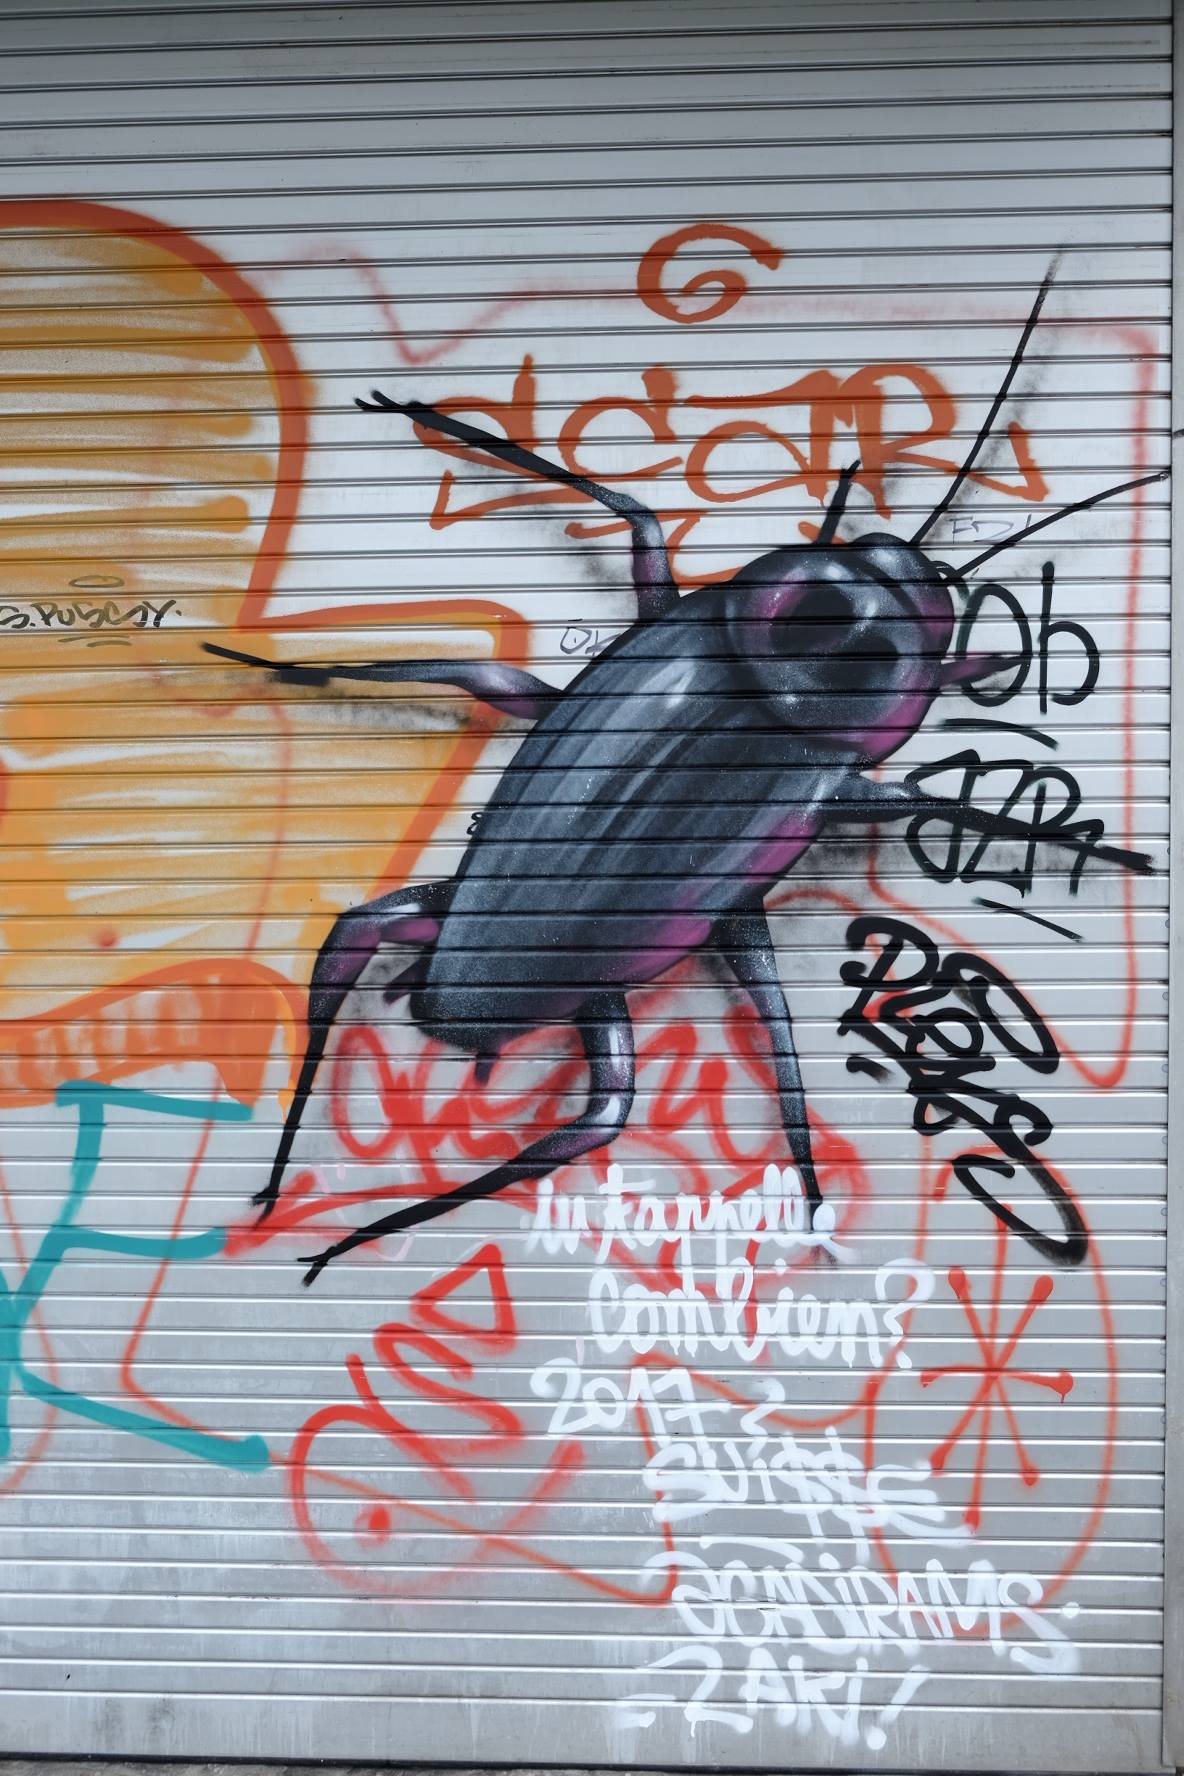 Bug graffiti with lots of tags in geneve